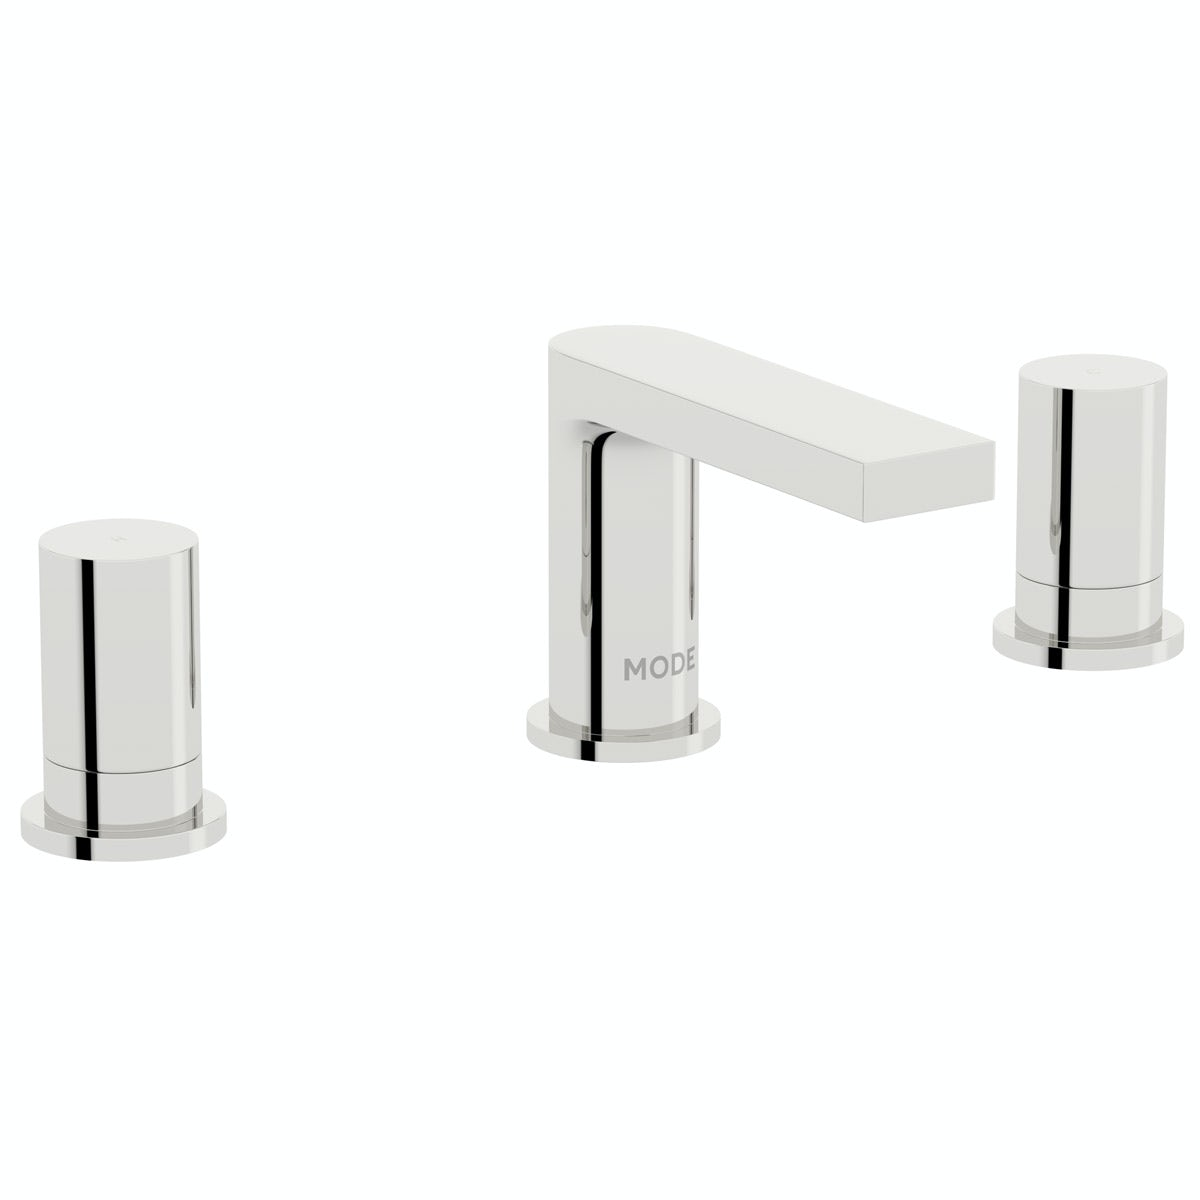 Mode Heath 3 hole basin mixer tap